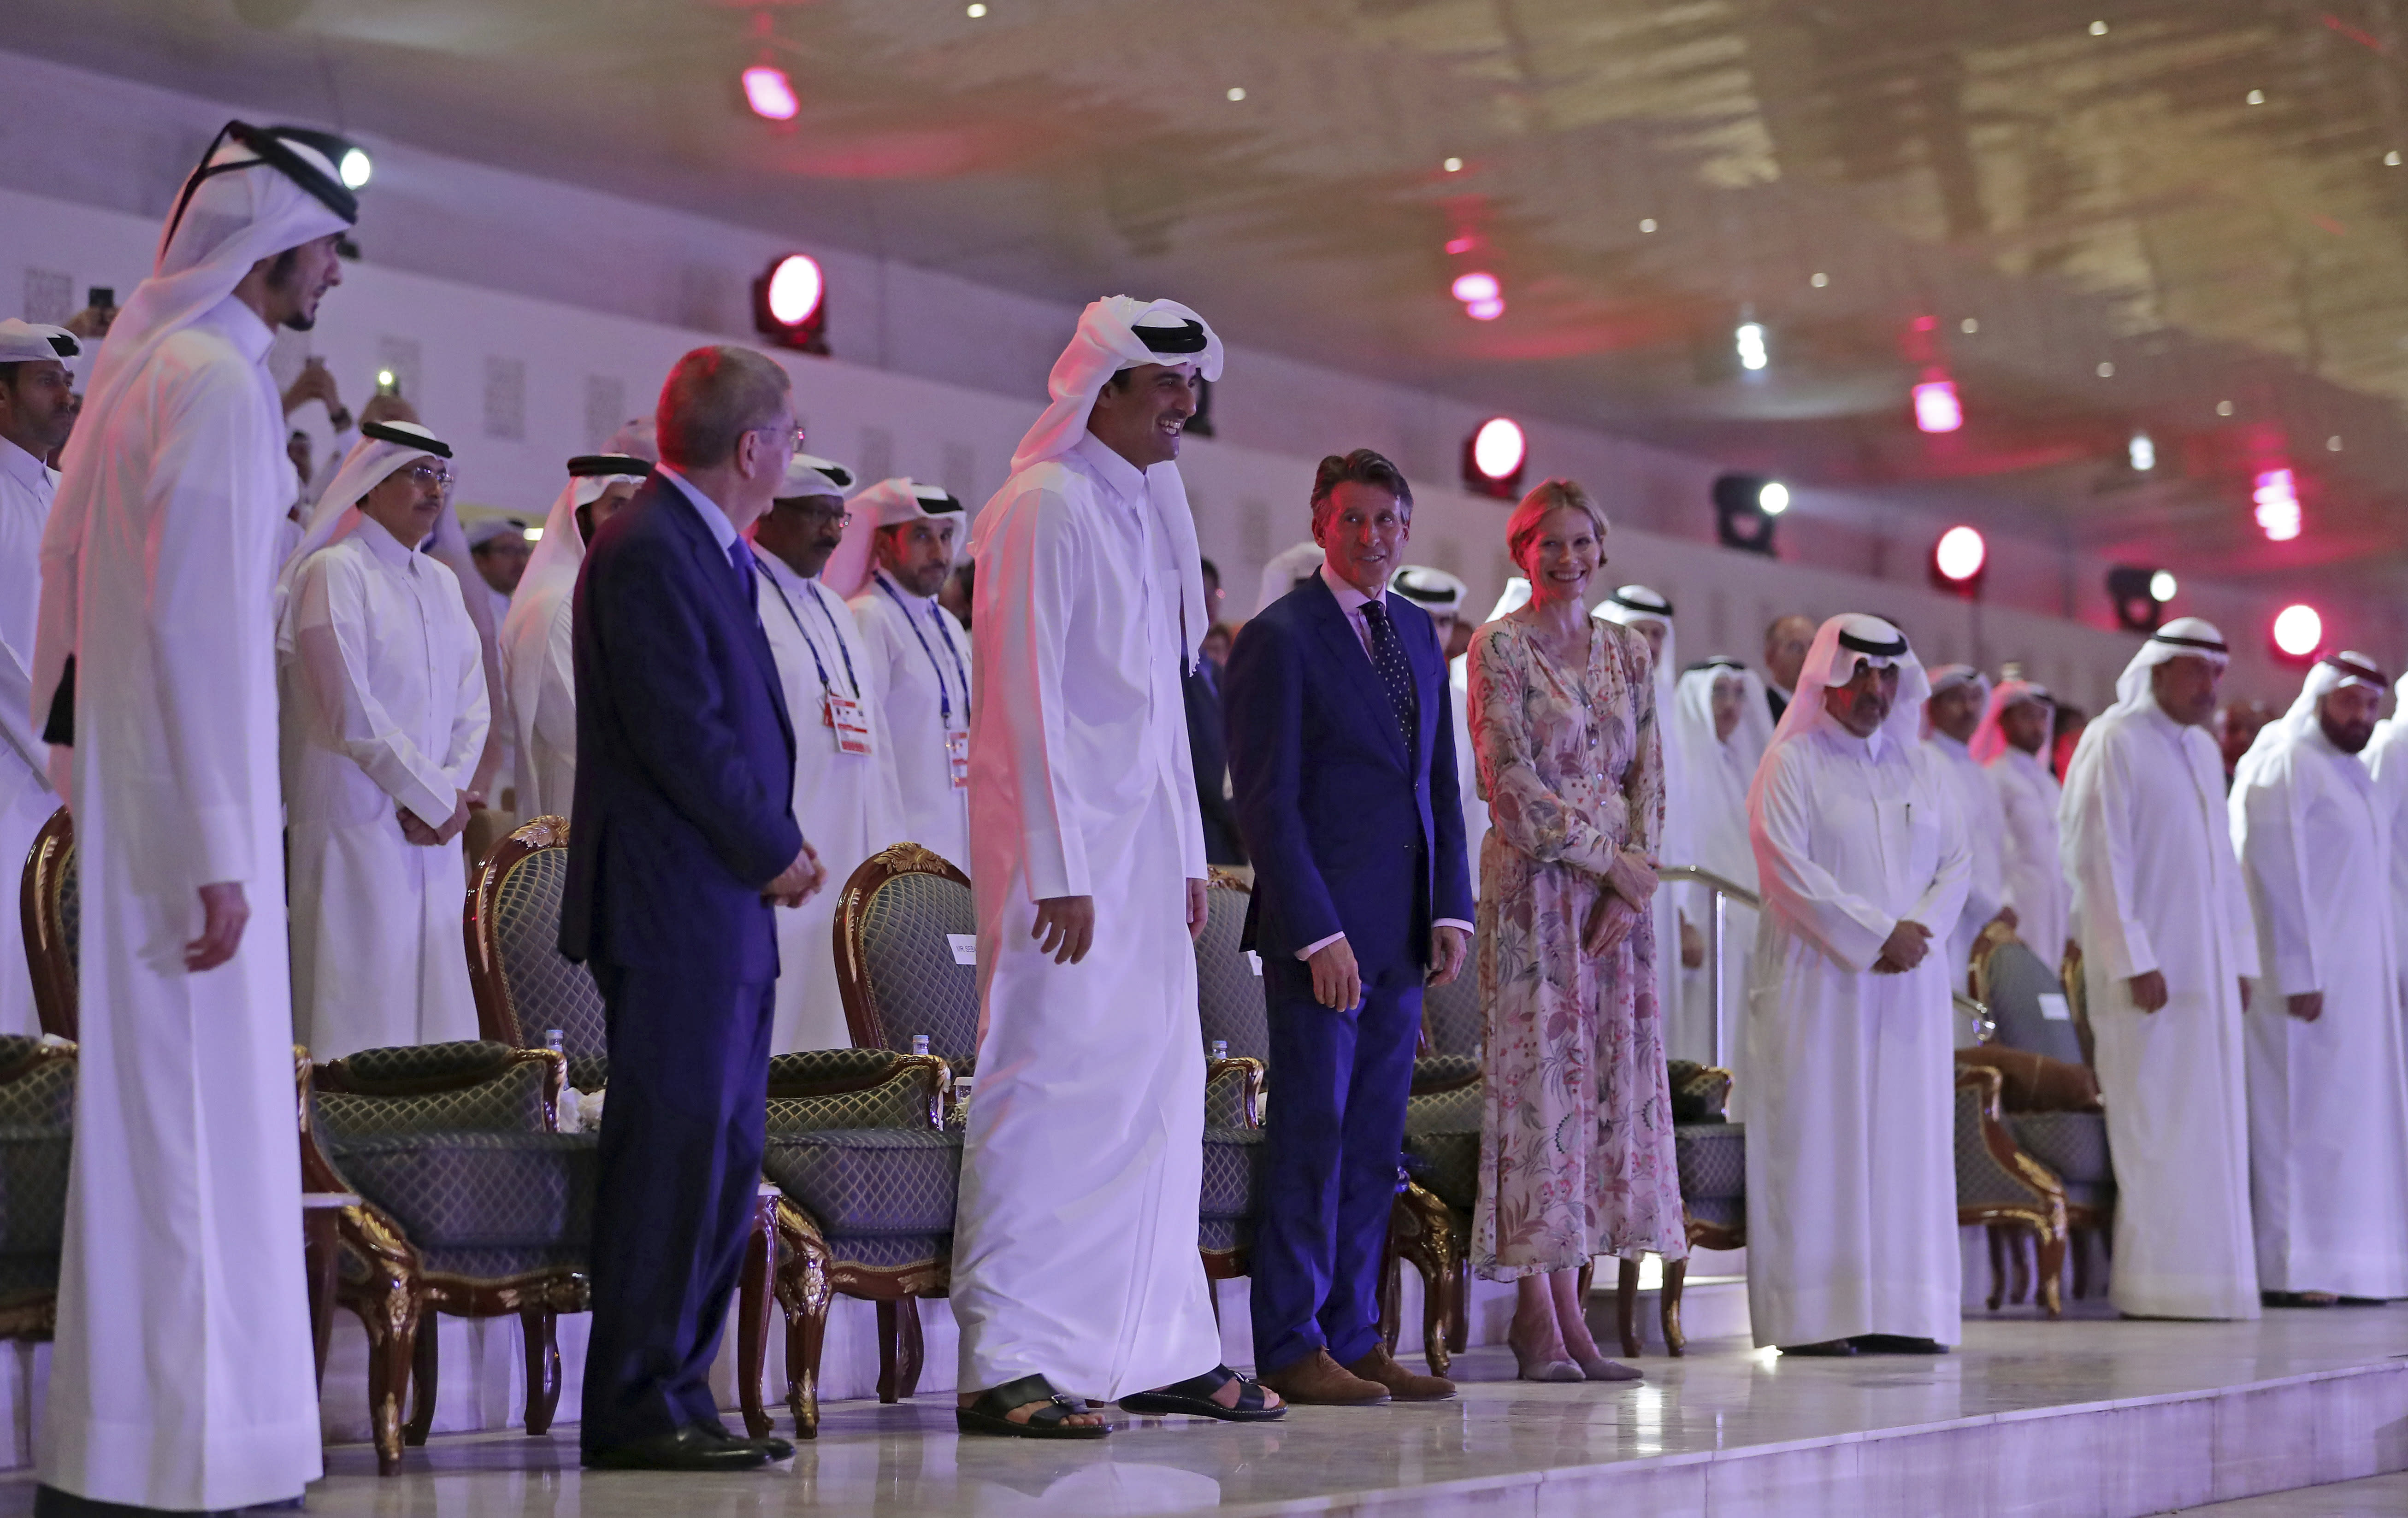 IOC president Thomas Bach, Emir of Qatar Sheikh Tamim bin Hamad Al Thani and IAAF President Sebastian Coe during the opening ceremony for the World Athletics Championships on the Corniche in Doha, Qatar, Friday, Sept. 27, 2019. (AP Photo/Hassan Ammar)